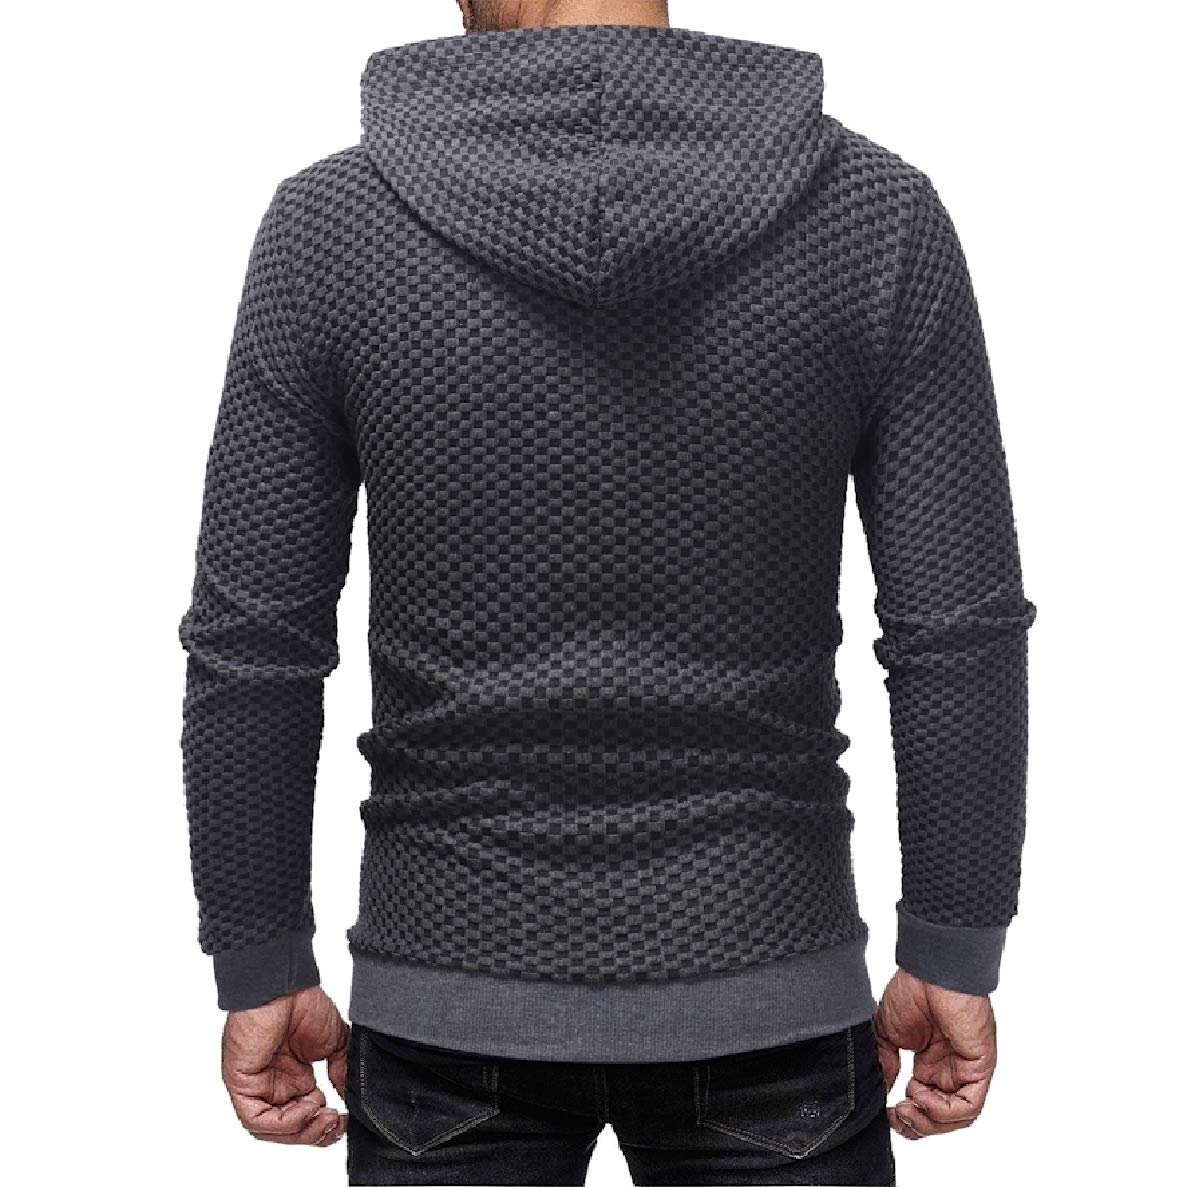 Winwinus Mens Zip-up Hood Cardi Long-Sleeve Outwear Plaid Sweatshirts